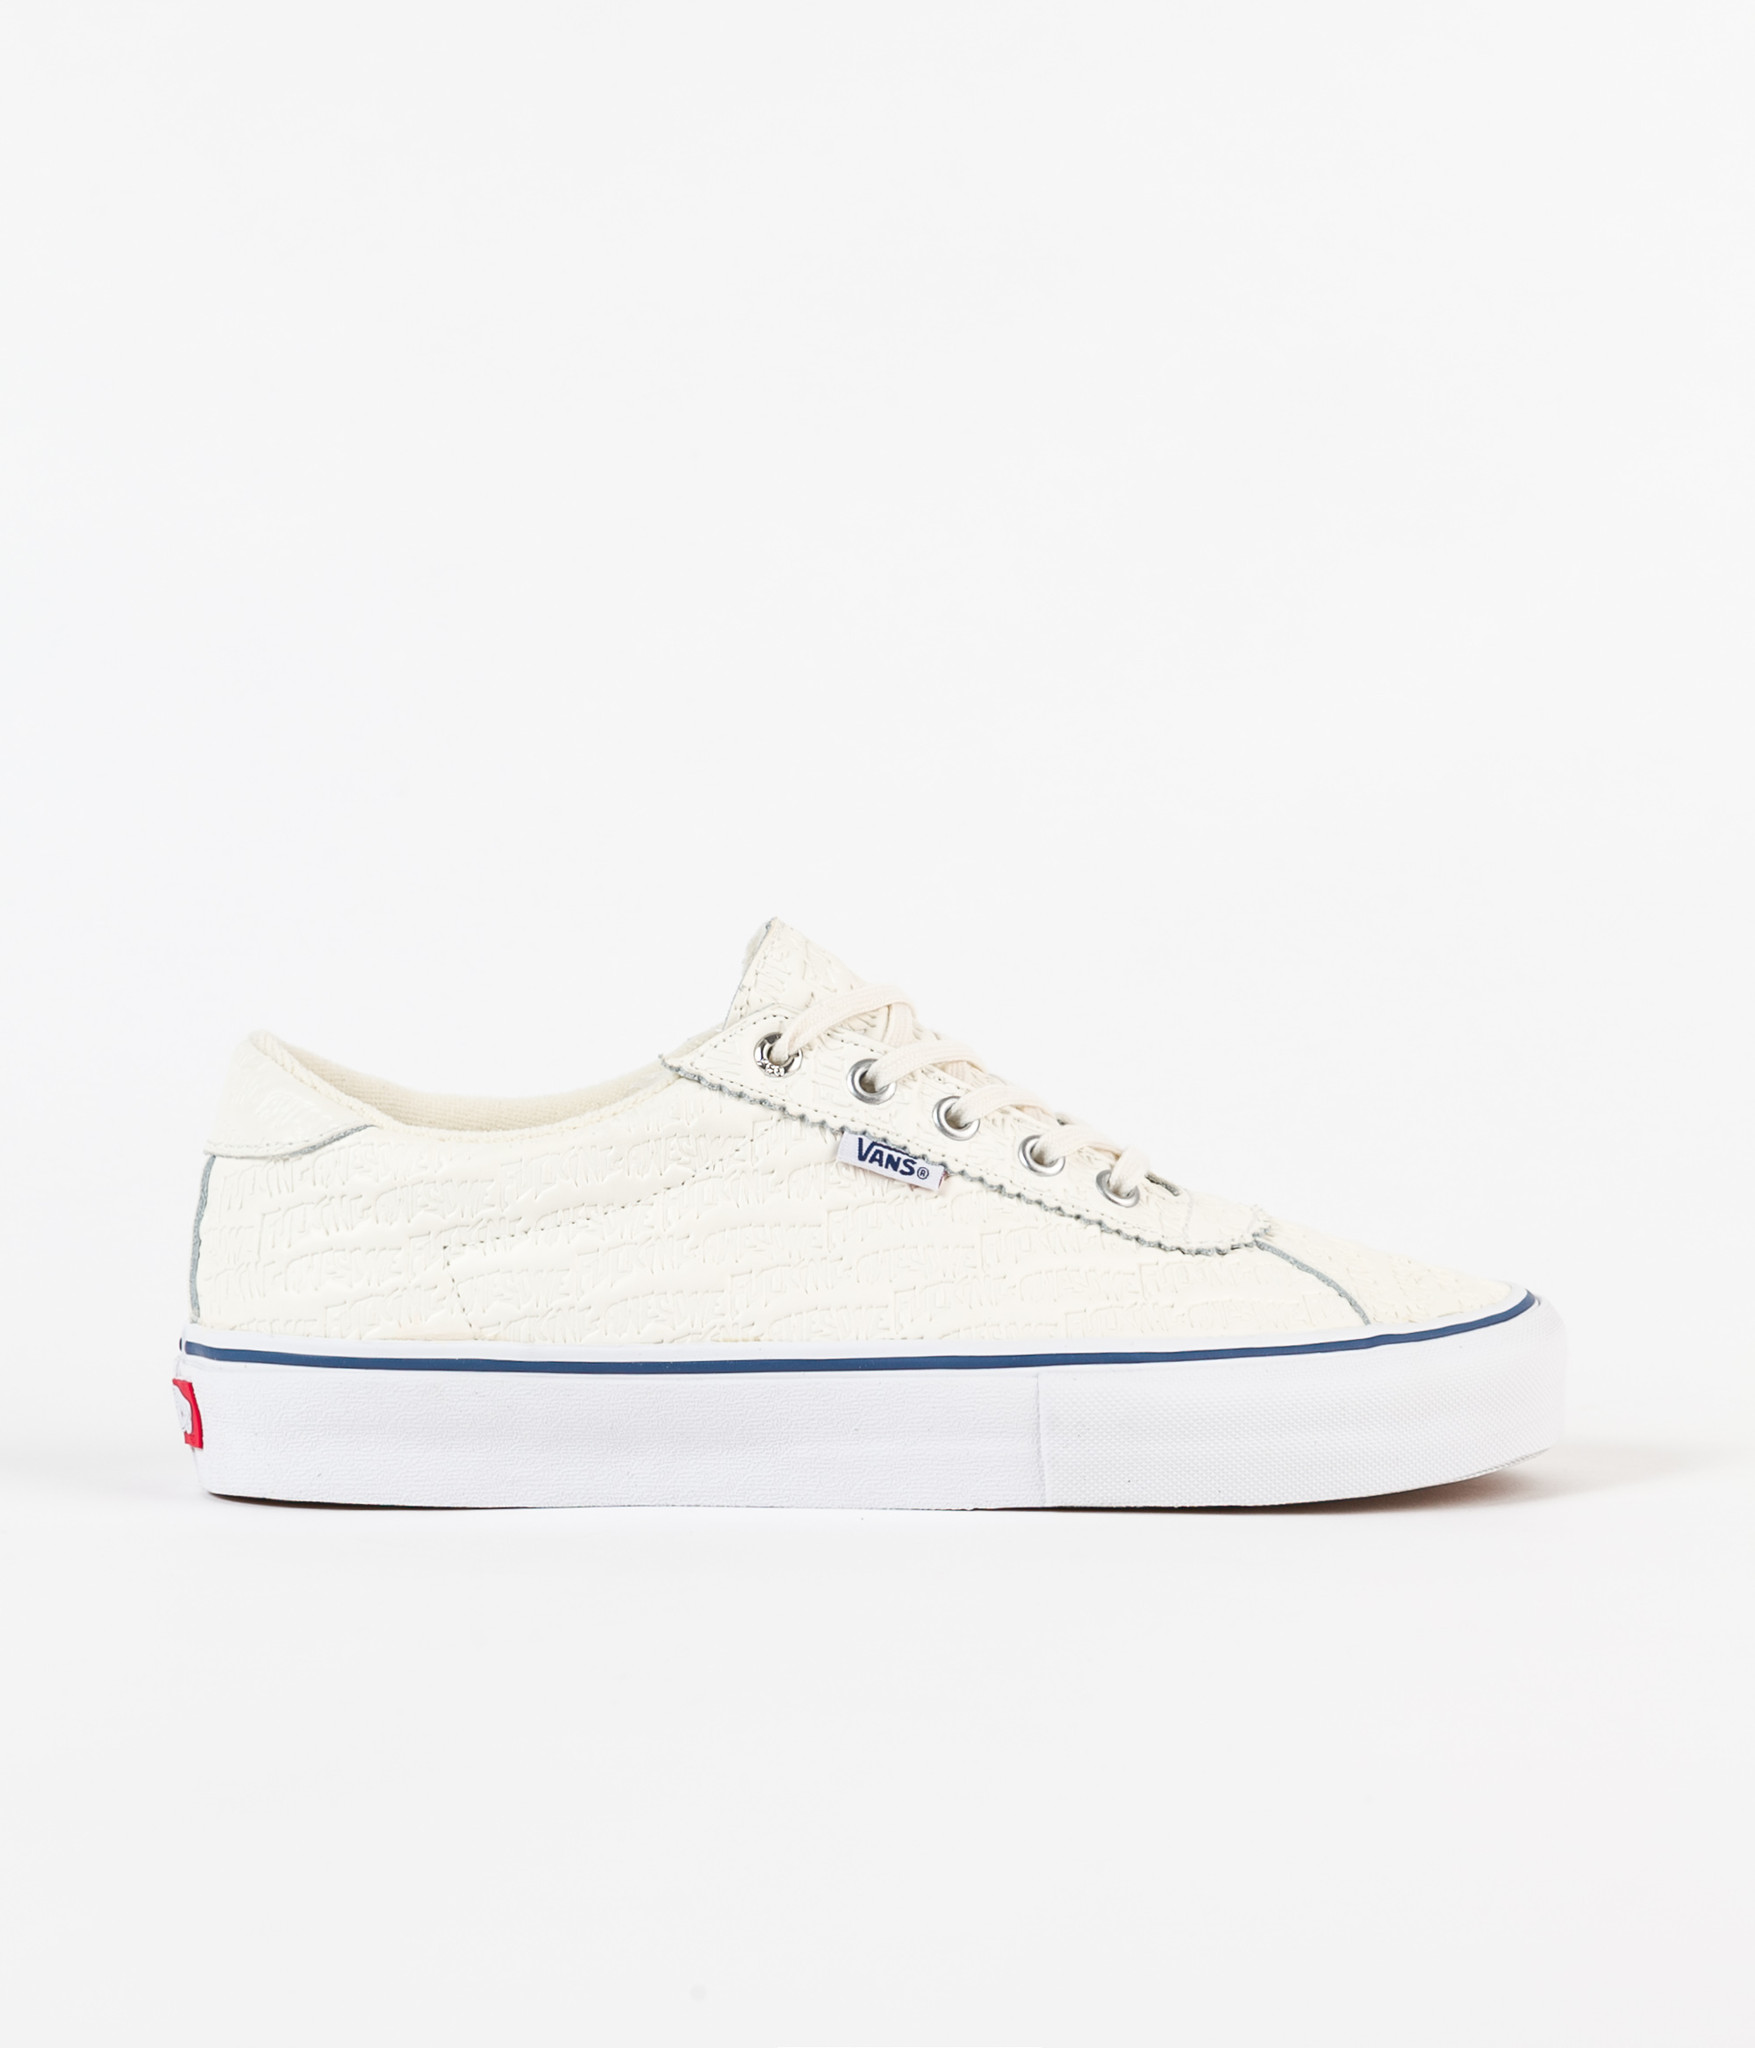 Vans X Fucking Awesome Epoch 94 Pro White